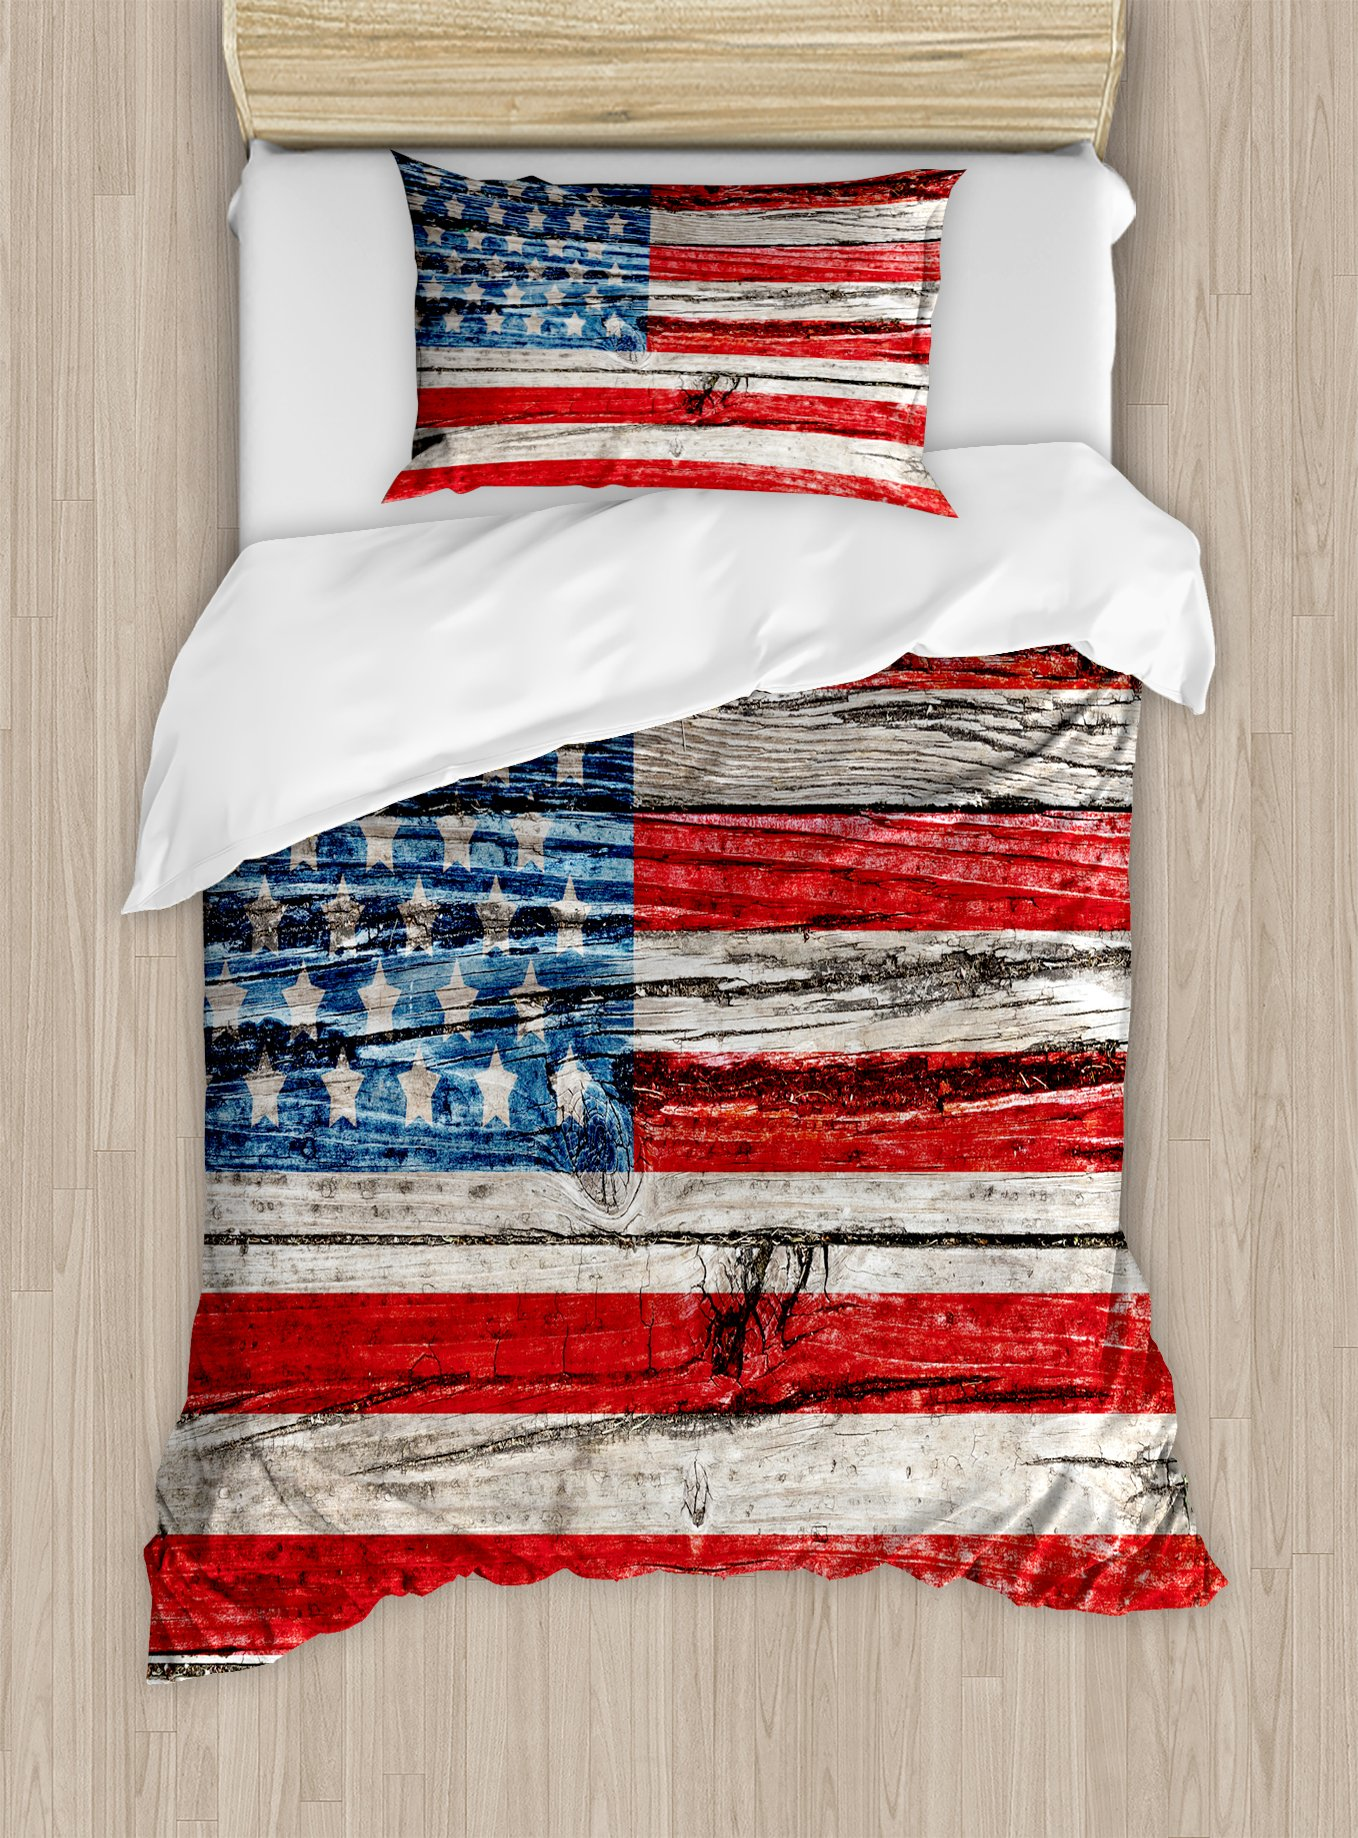 Ambesonne USA Duvet Cover Set Twin Size, Fourth of July Independence Day Painted Wooden Panel Wall Looking Image Freedom, Decorative 2 Piece Bedding Set with 1 Pillow Sham, Blue Red Beige